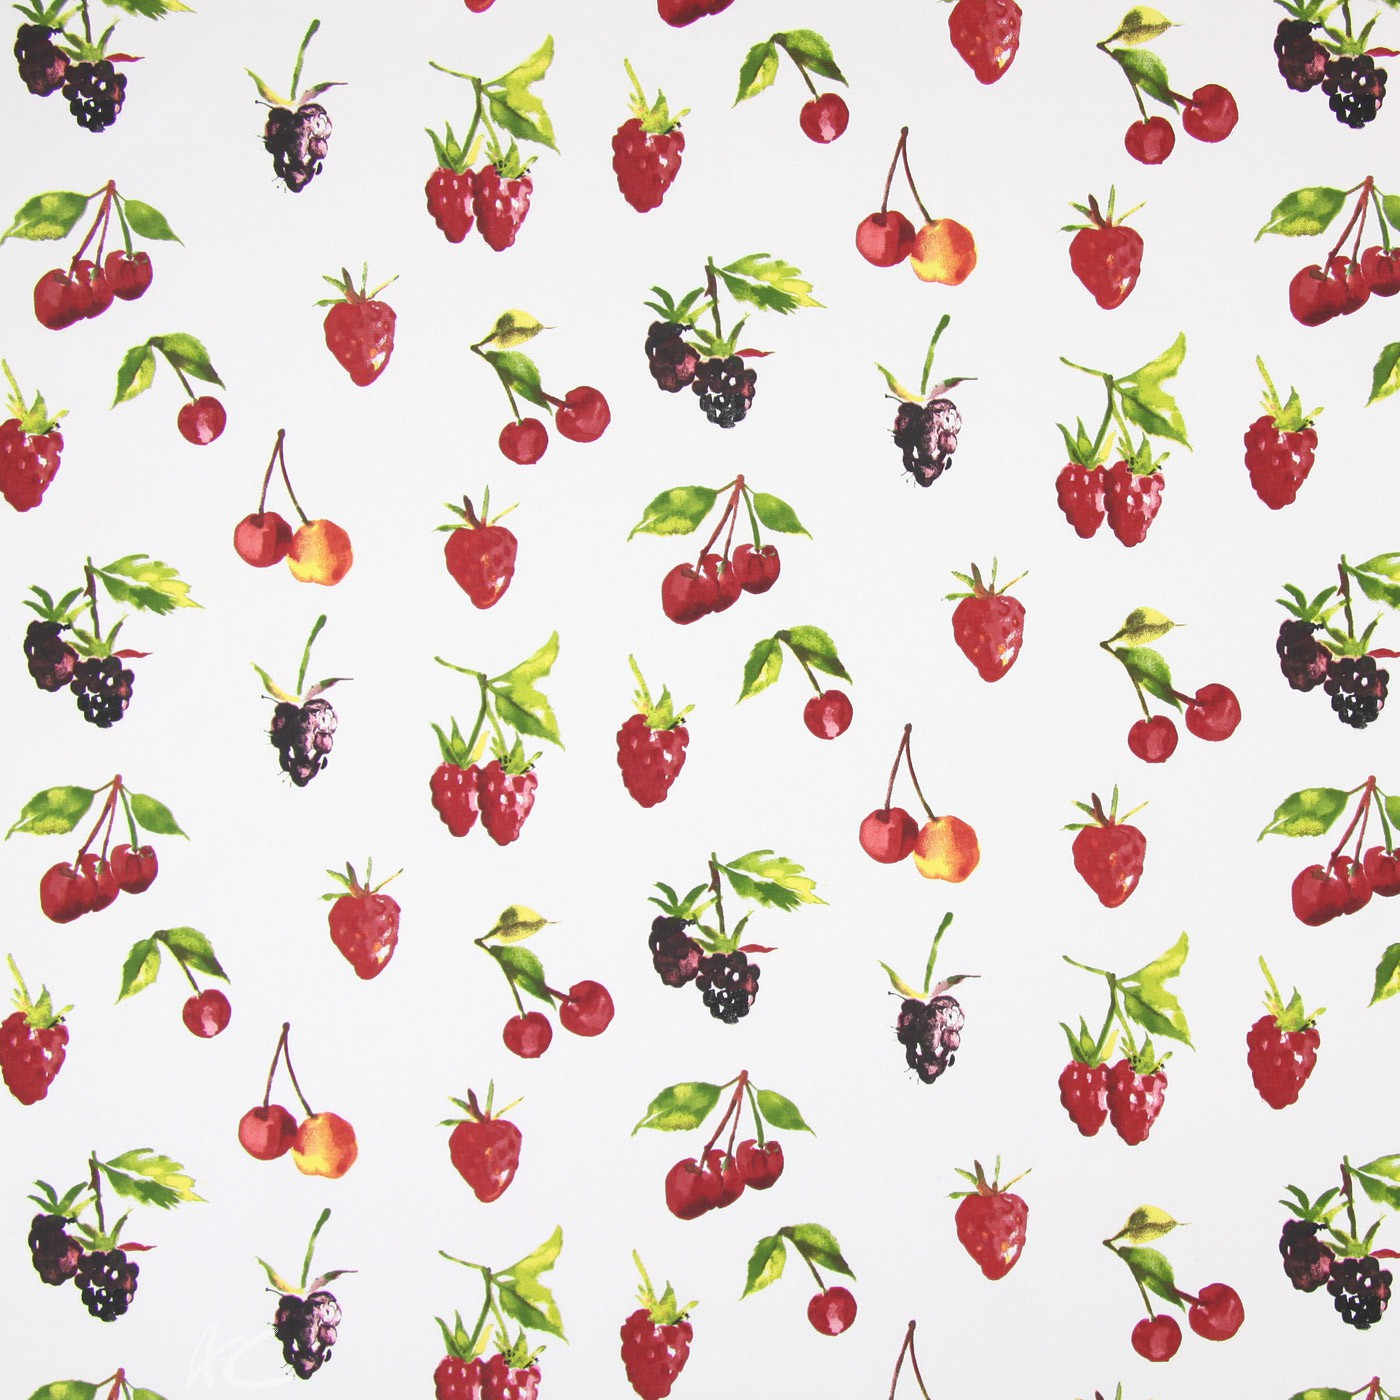 Country Fair Summer Berries Watercolour Made to Measure Curtains